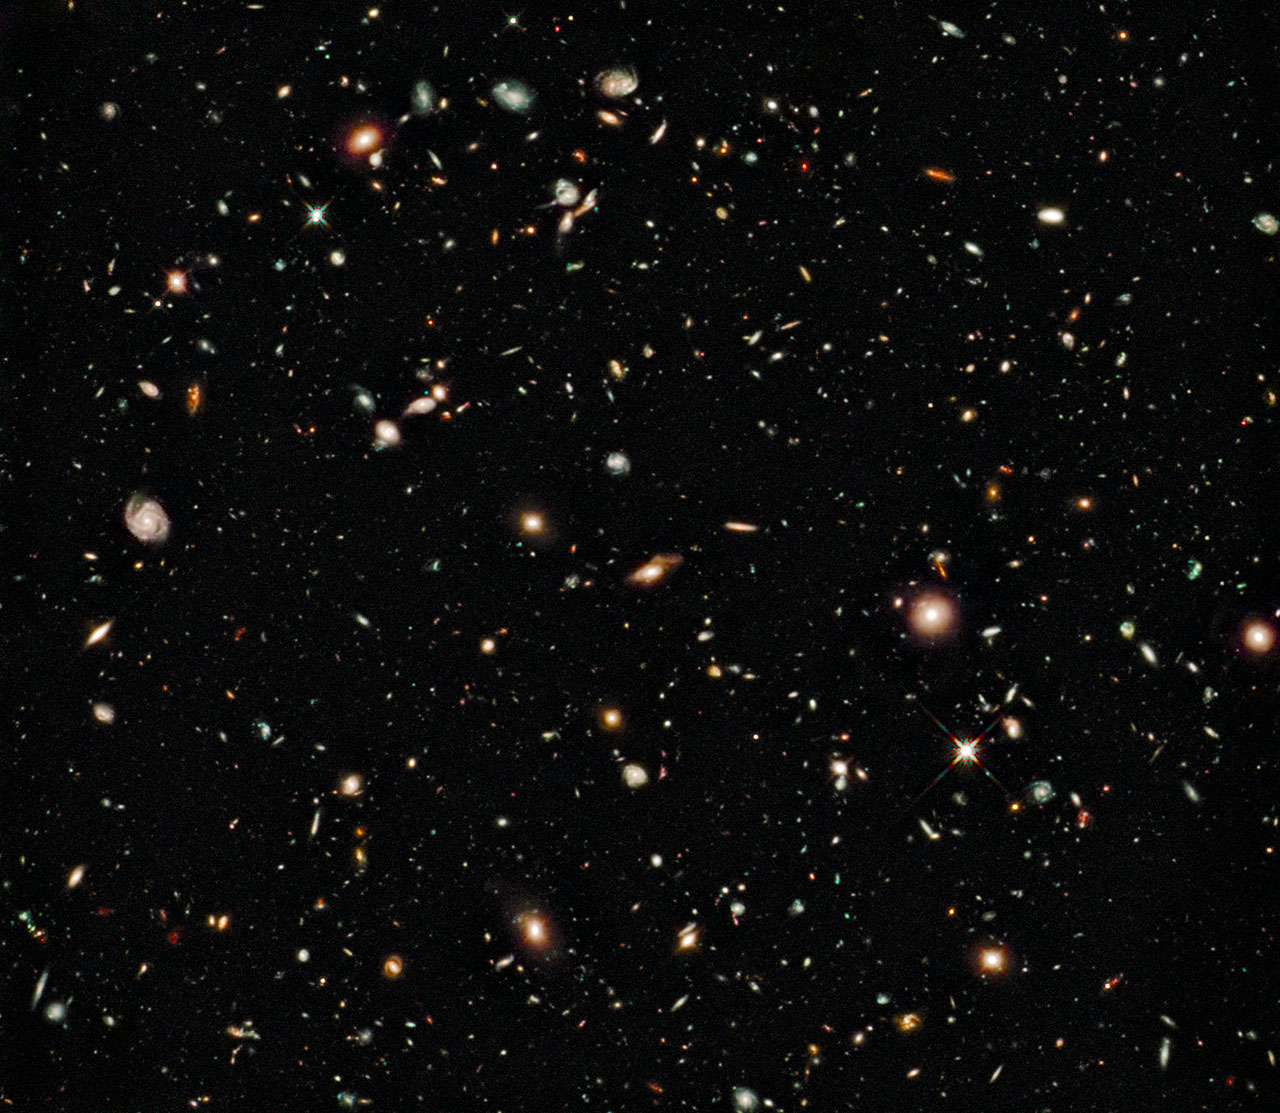 The Hubble Deep Field image showing multiple galaxies